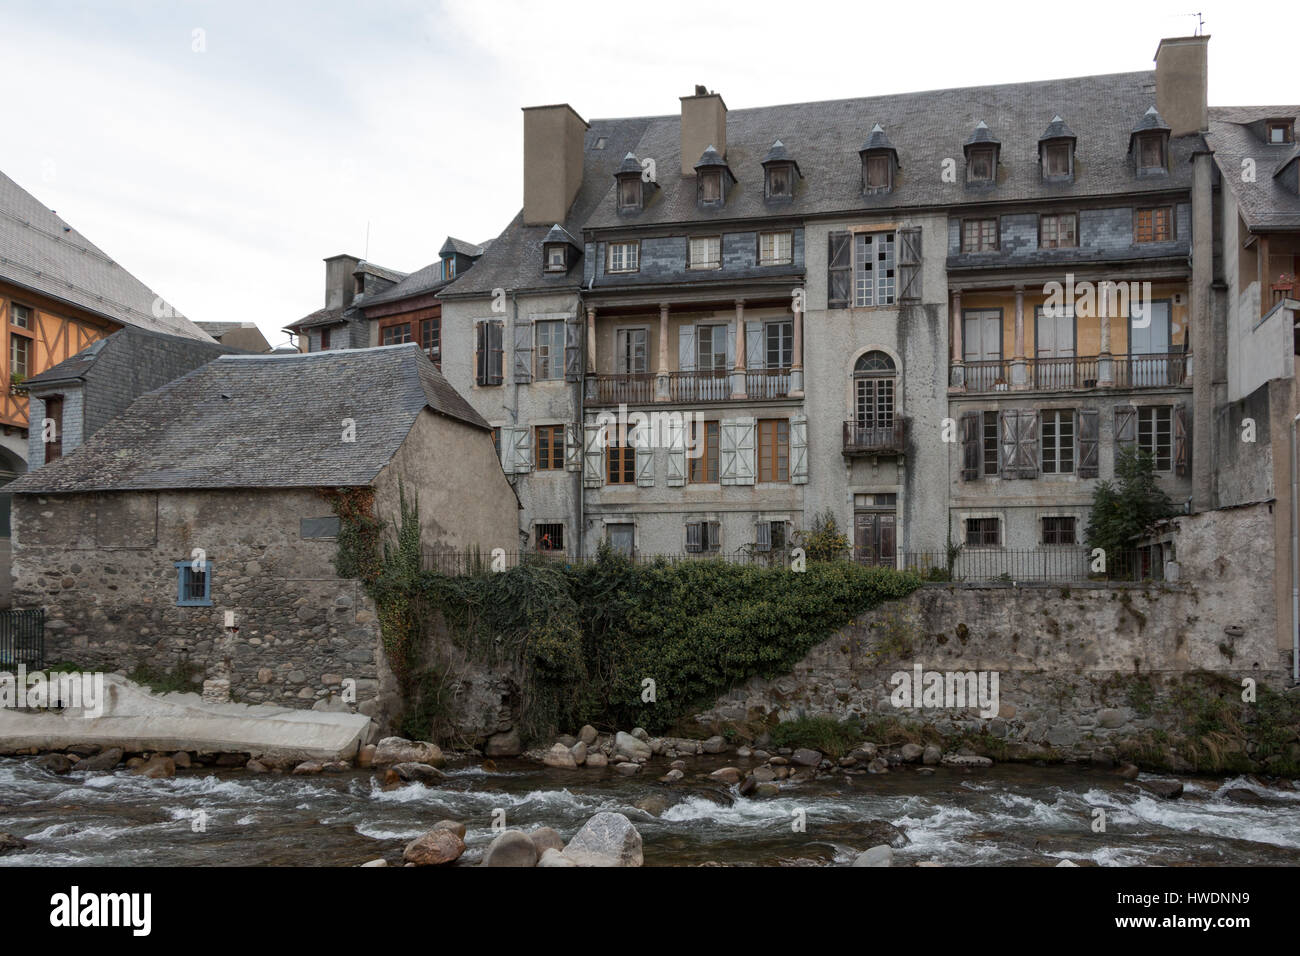 The commune of Arreau in France in the Pyrenees Stock Photo